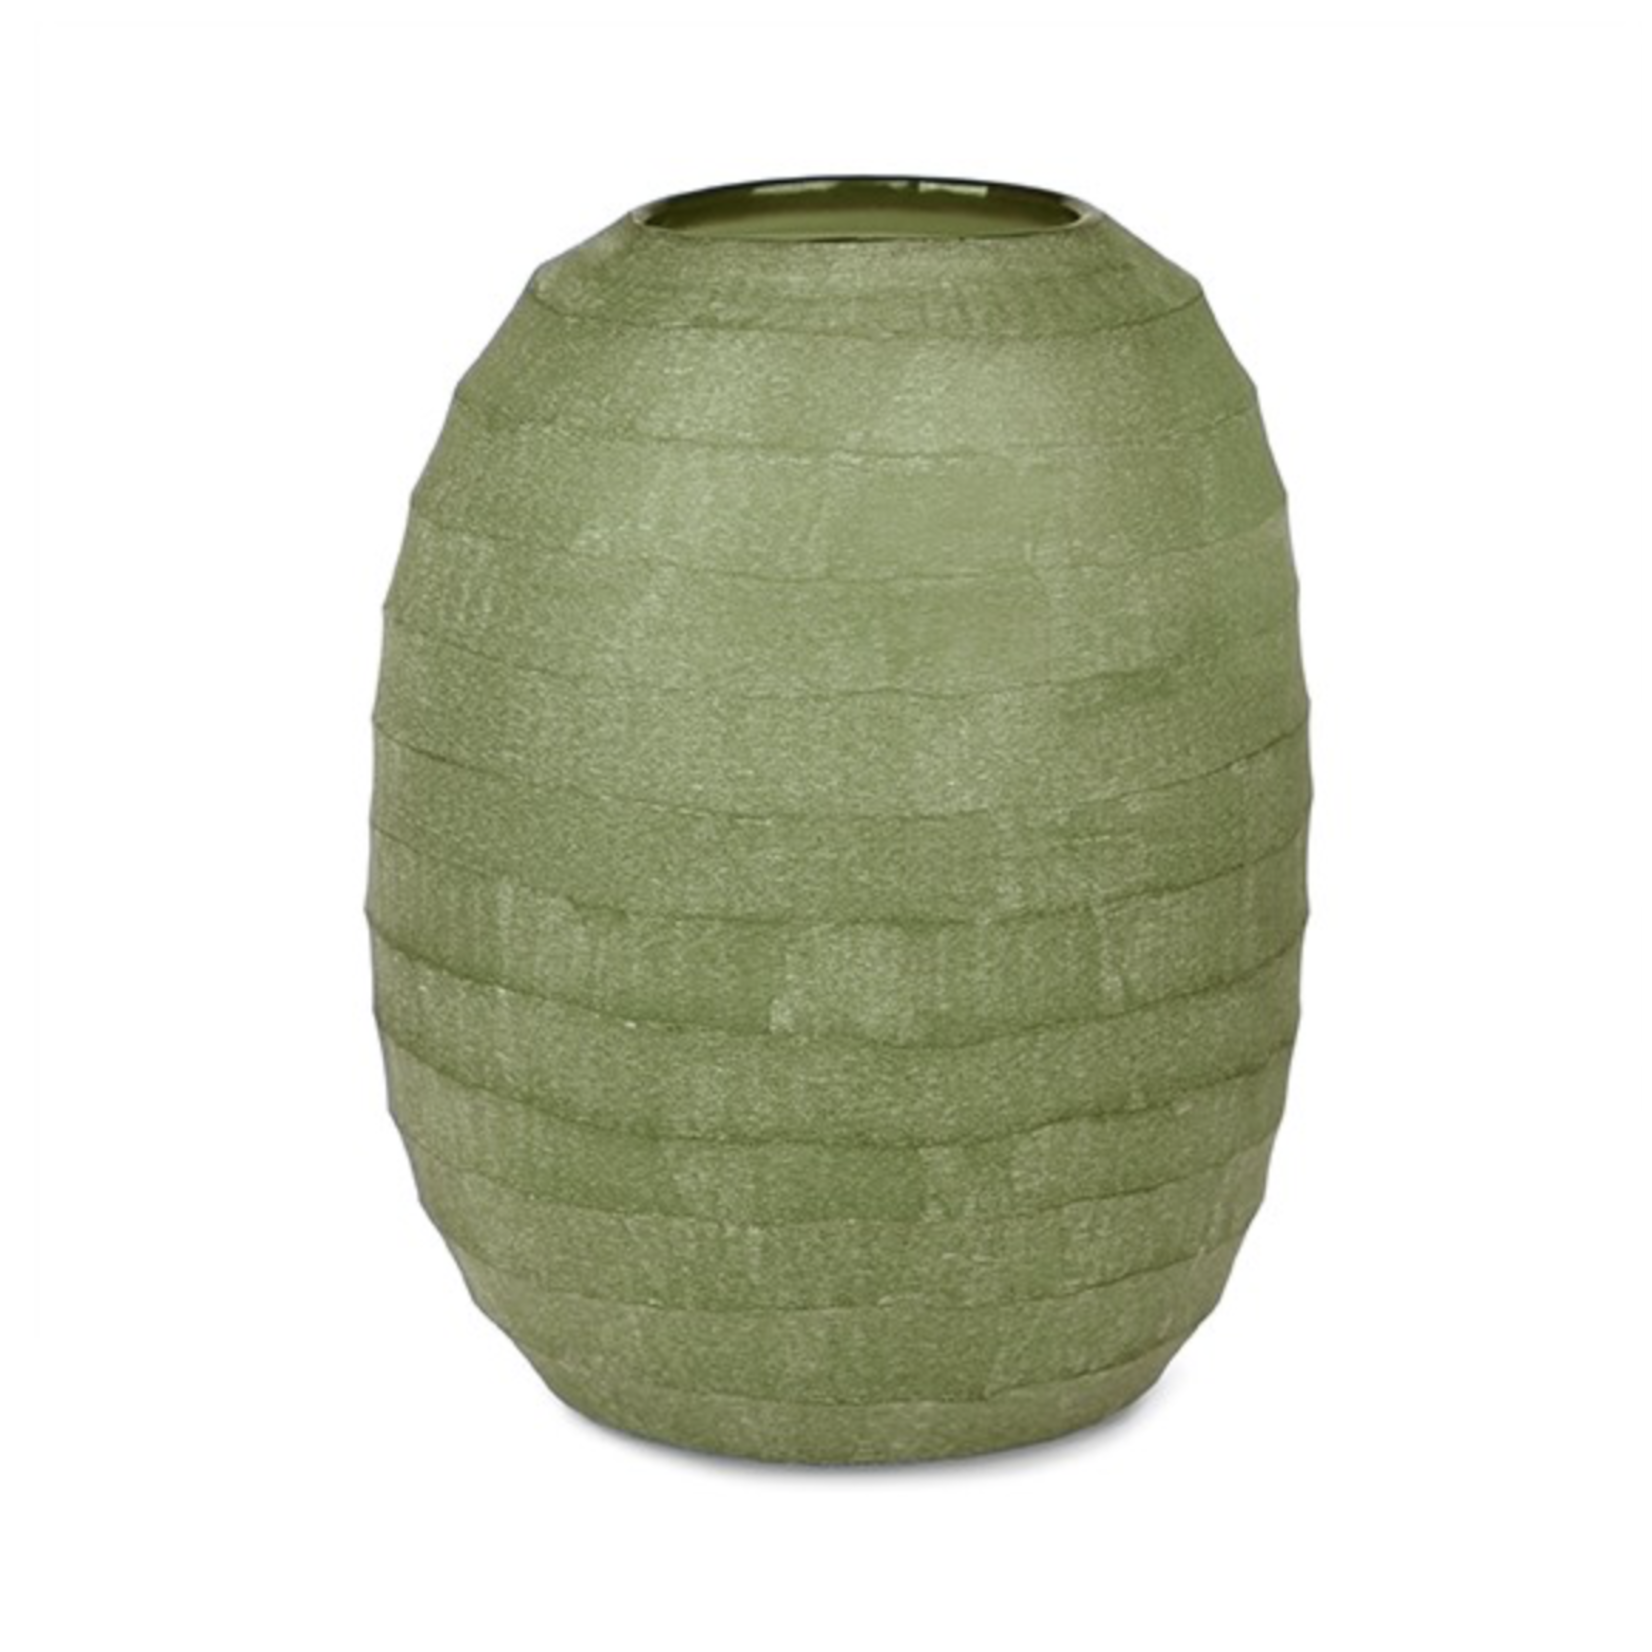 Guaxs Vase Belly XL | Vert olive